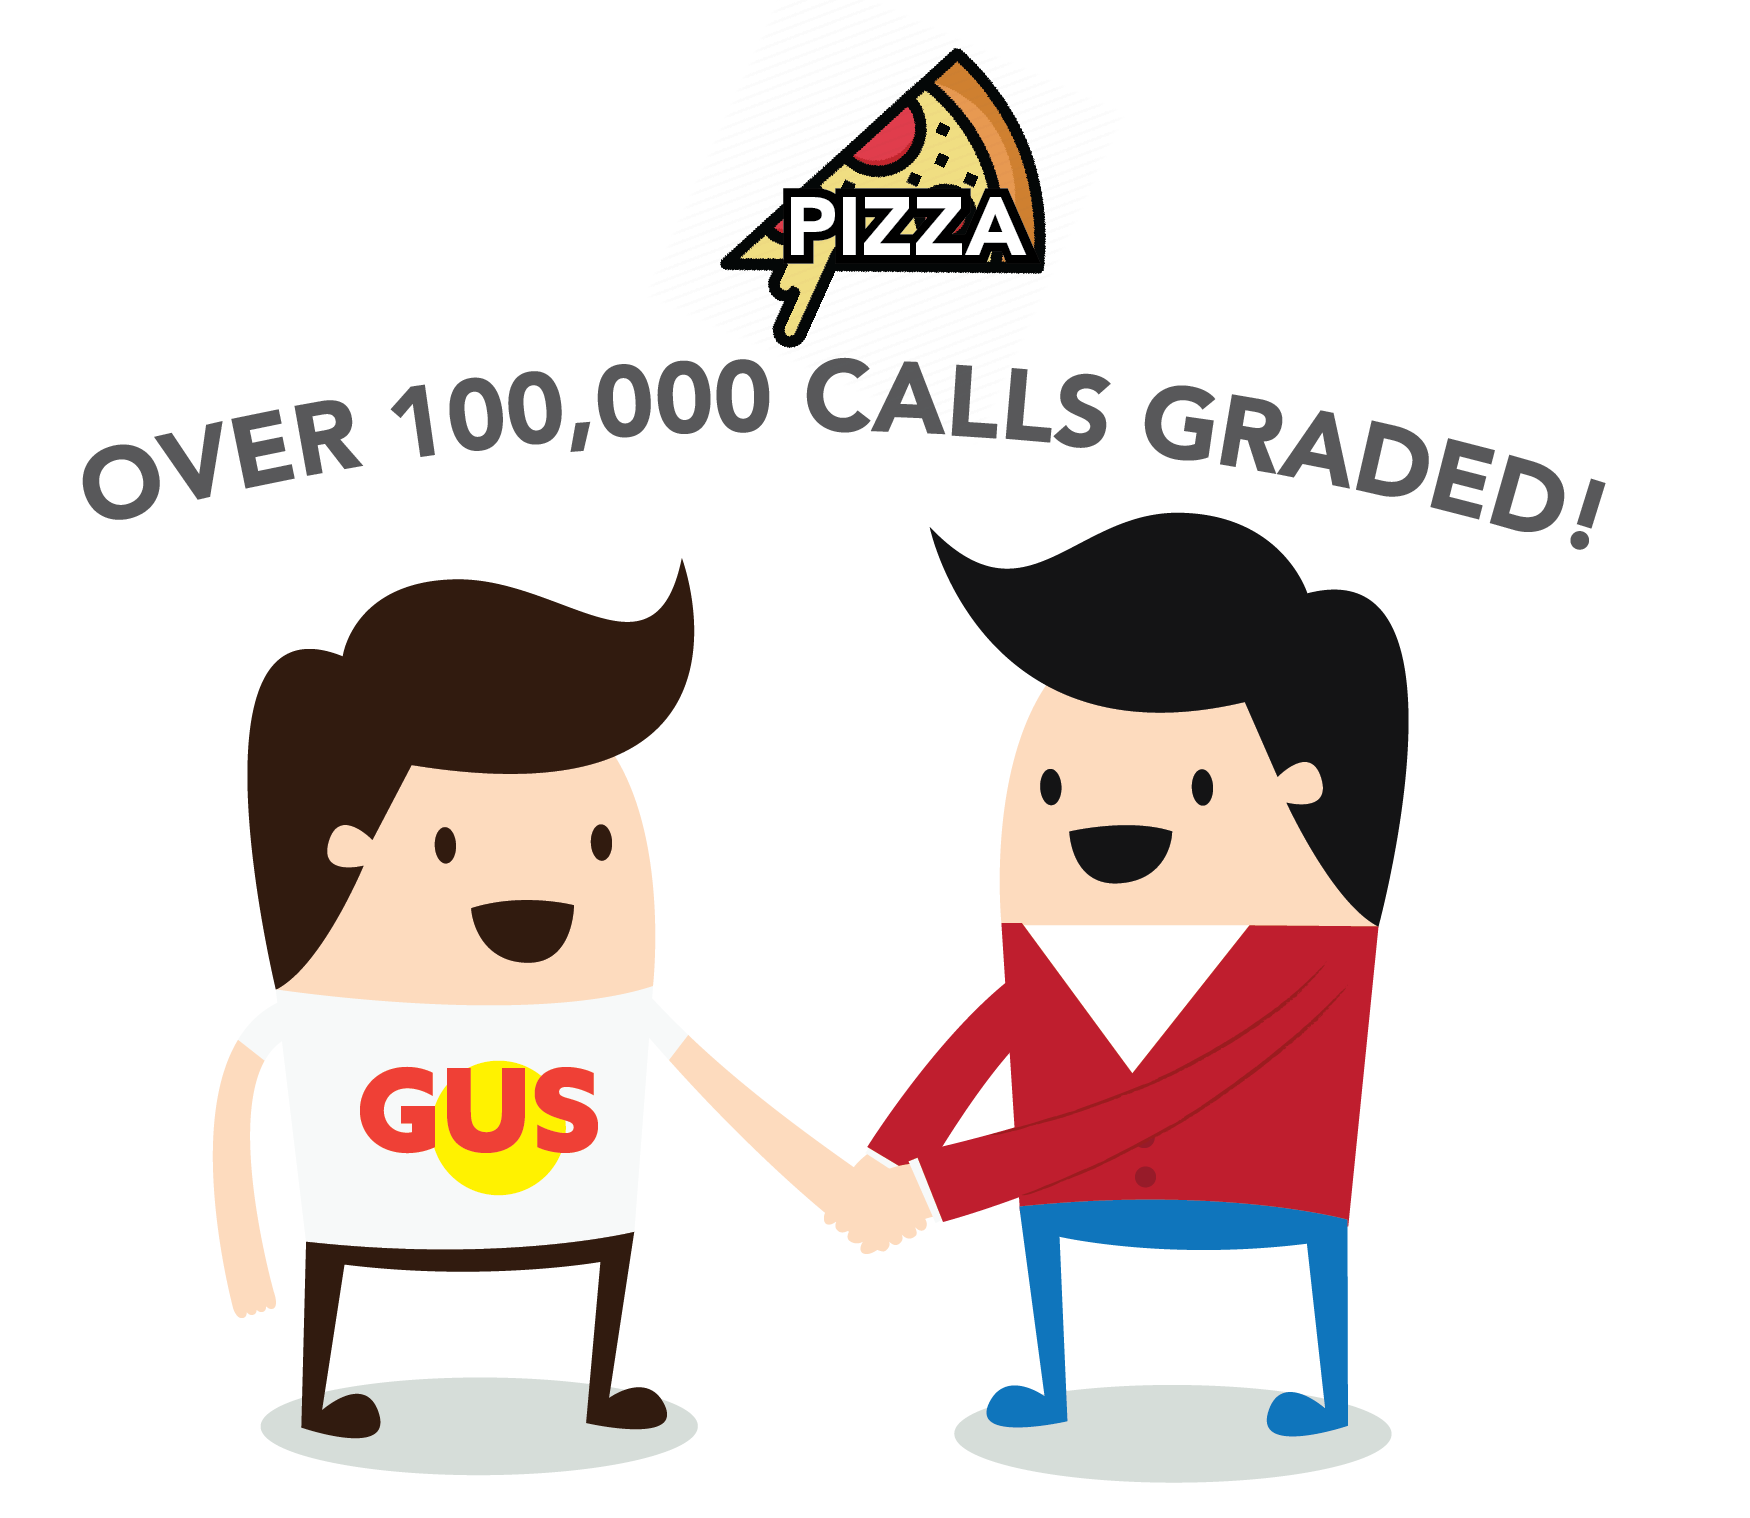 Schedule a call with US about GUS